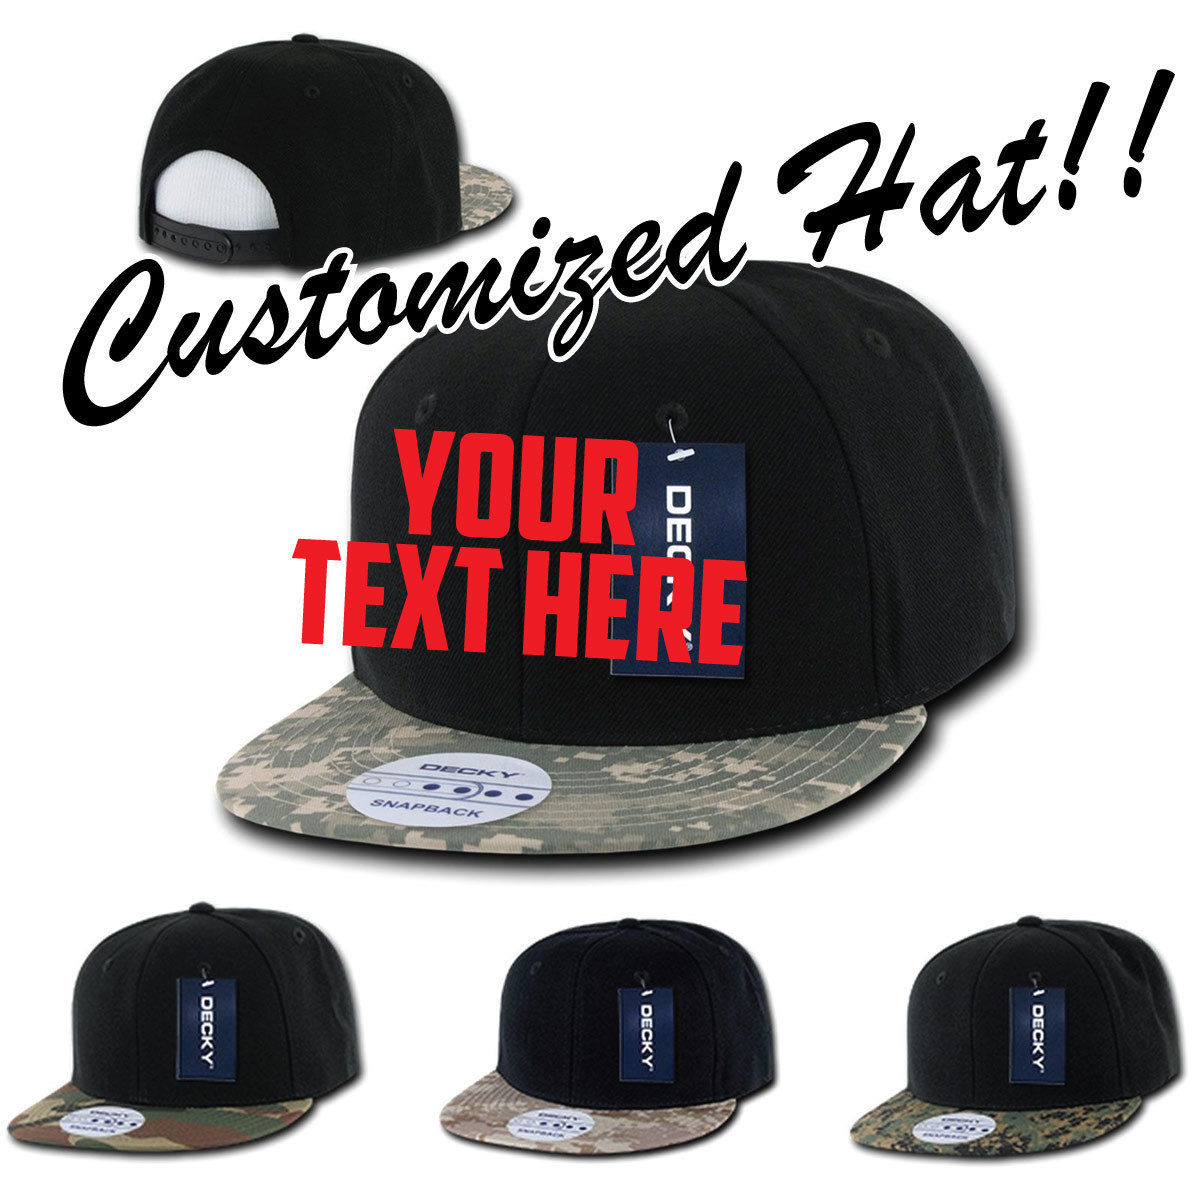 CUSTOM EMBROIDERY Personalized Customized Decky Camoflage Bill Snapback Cap 356